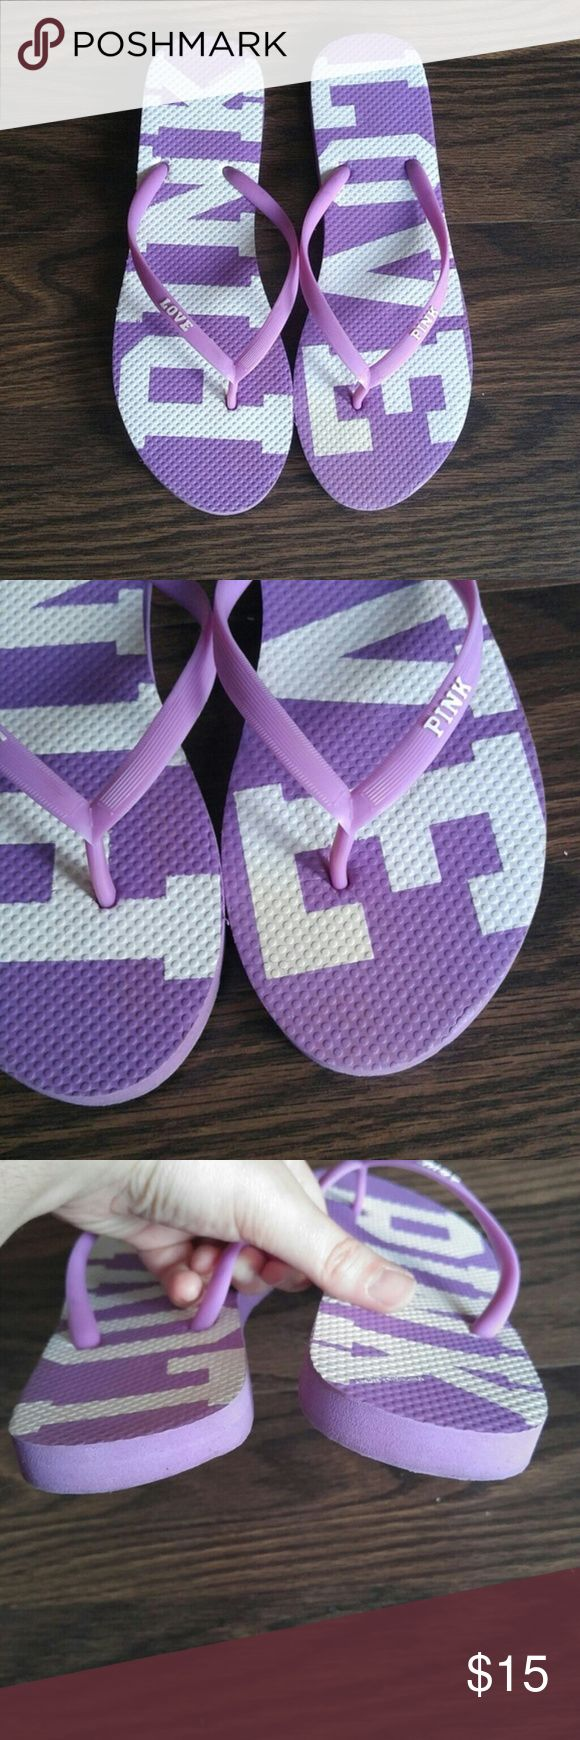 VS PINK Sandals Victoria's Secret PINK purple flip flops in size M / L - these will fit an 8-9. There is a small stain on the toe of the left shoe. PINK Victoria's Secret Shoes Sandals